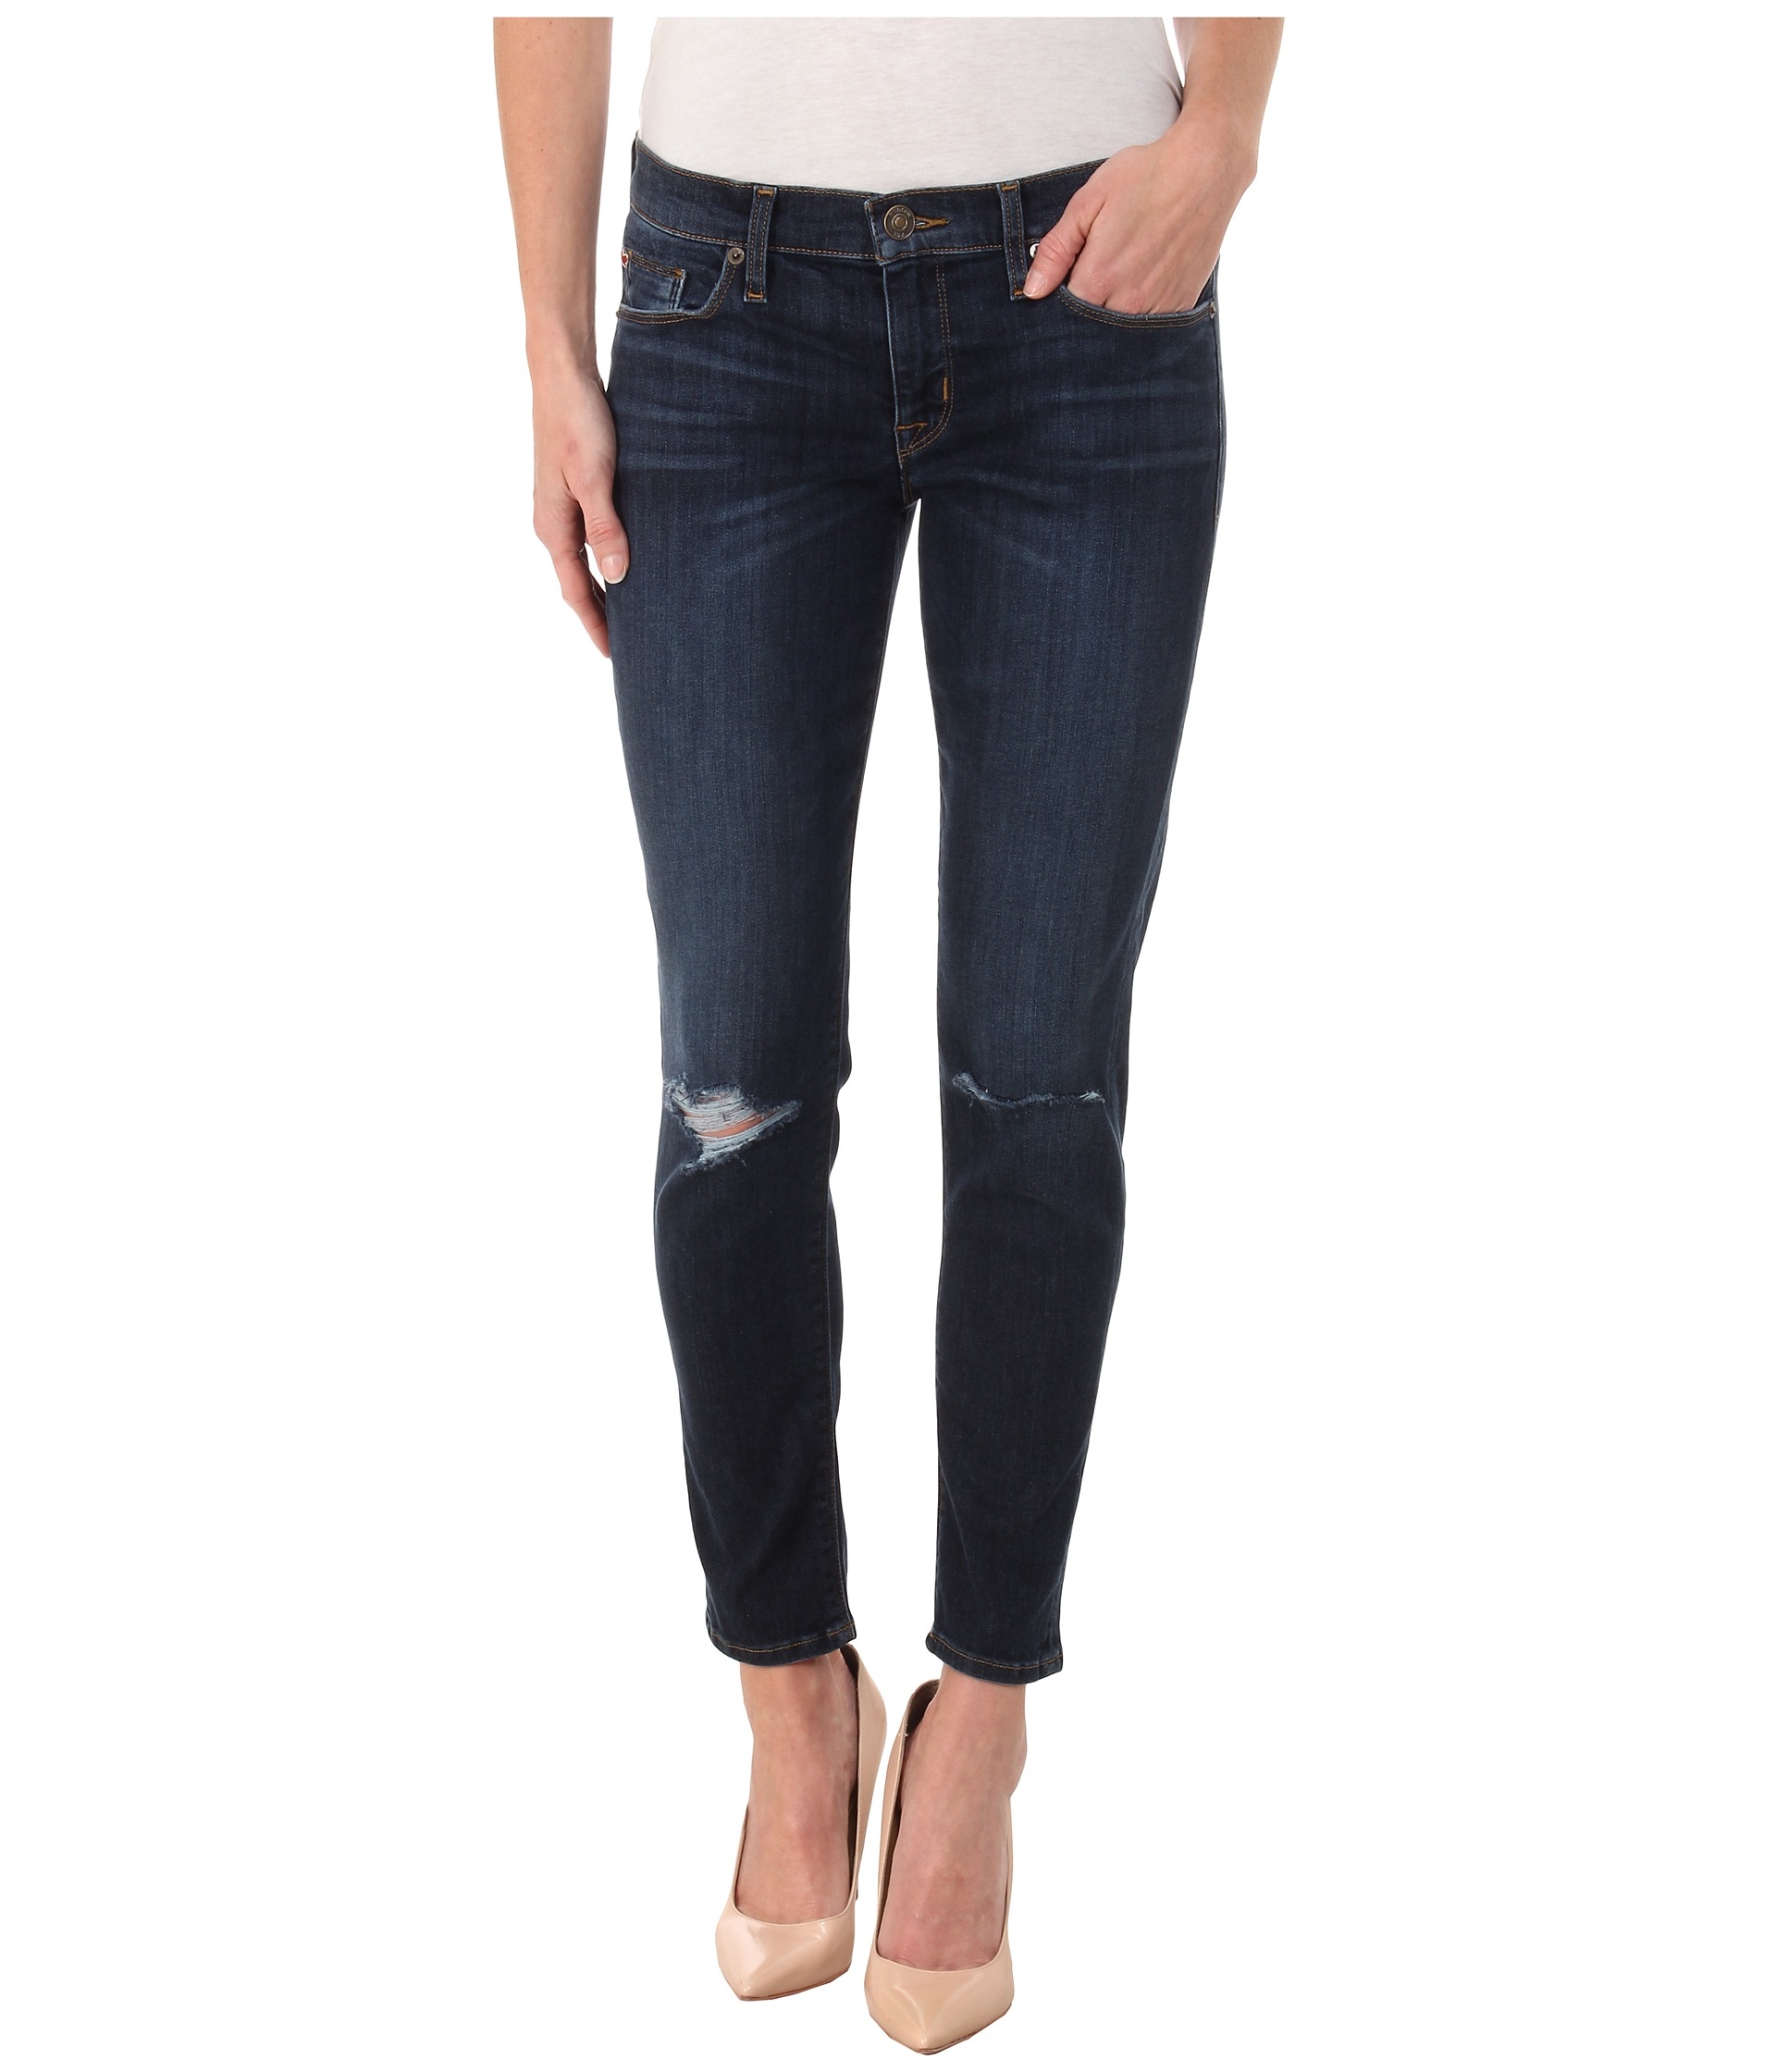 Size 2 Skinny Jeans - Jeans Am